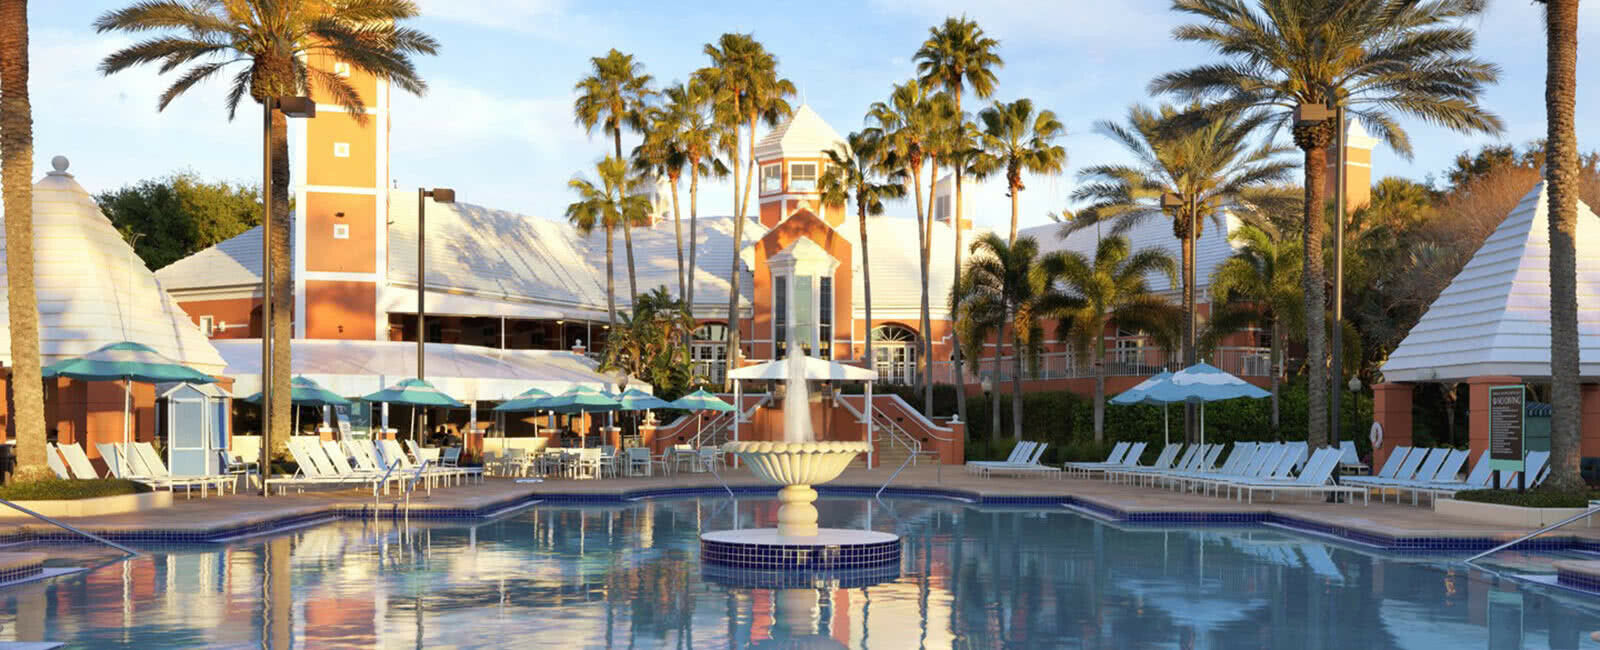 Hilton Grand Vacations At SeaWorld Orlando 2400 Annual Points - $1.00